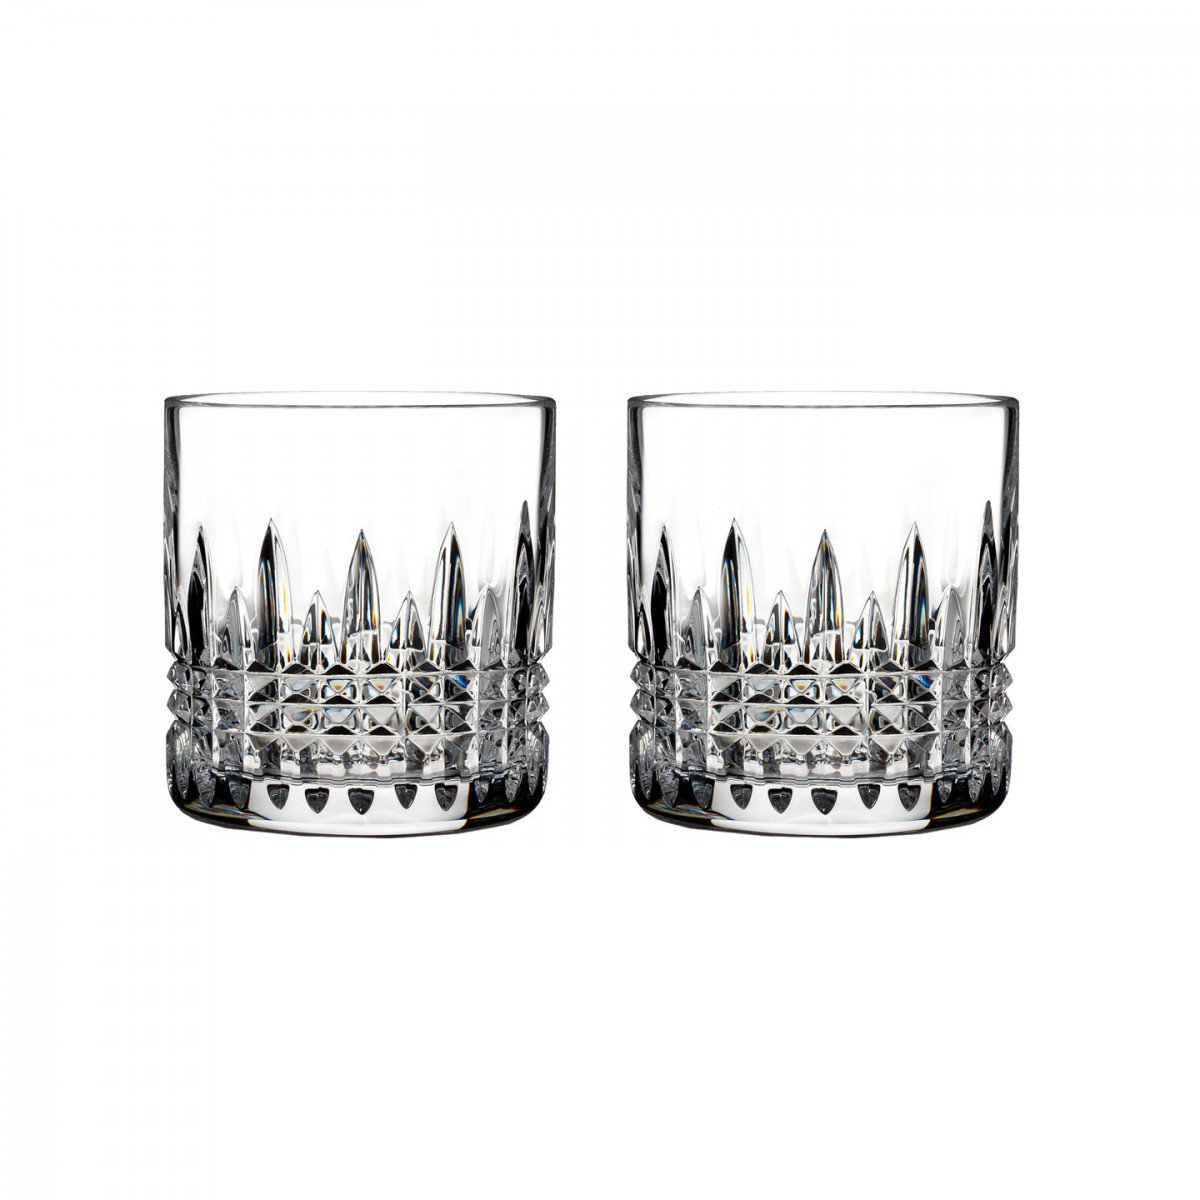 Waterford Lismore Diamond Straight Sided Whiskey Tumblers, Pair